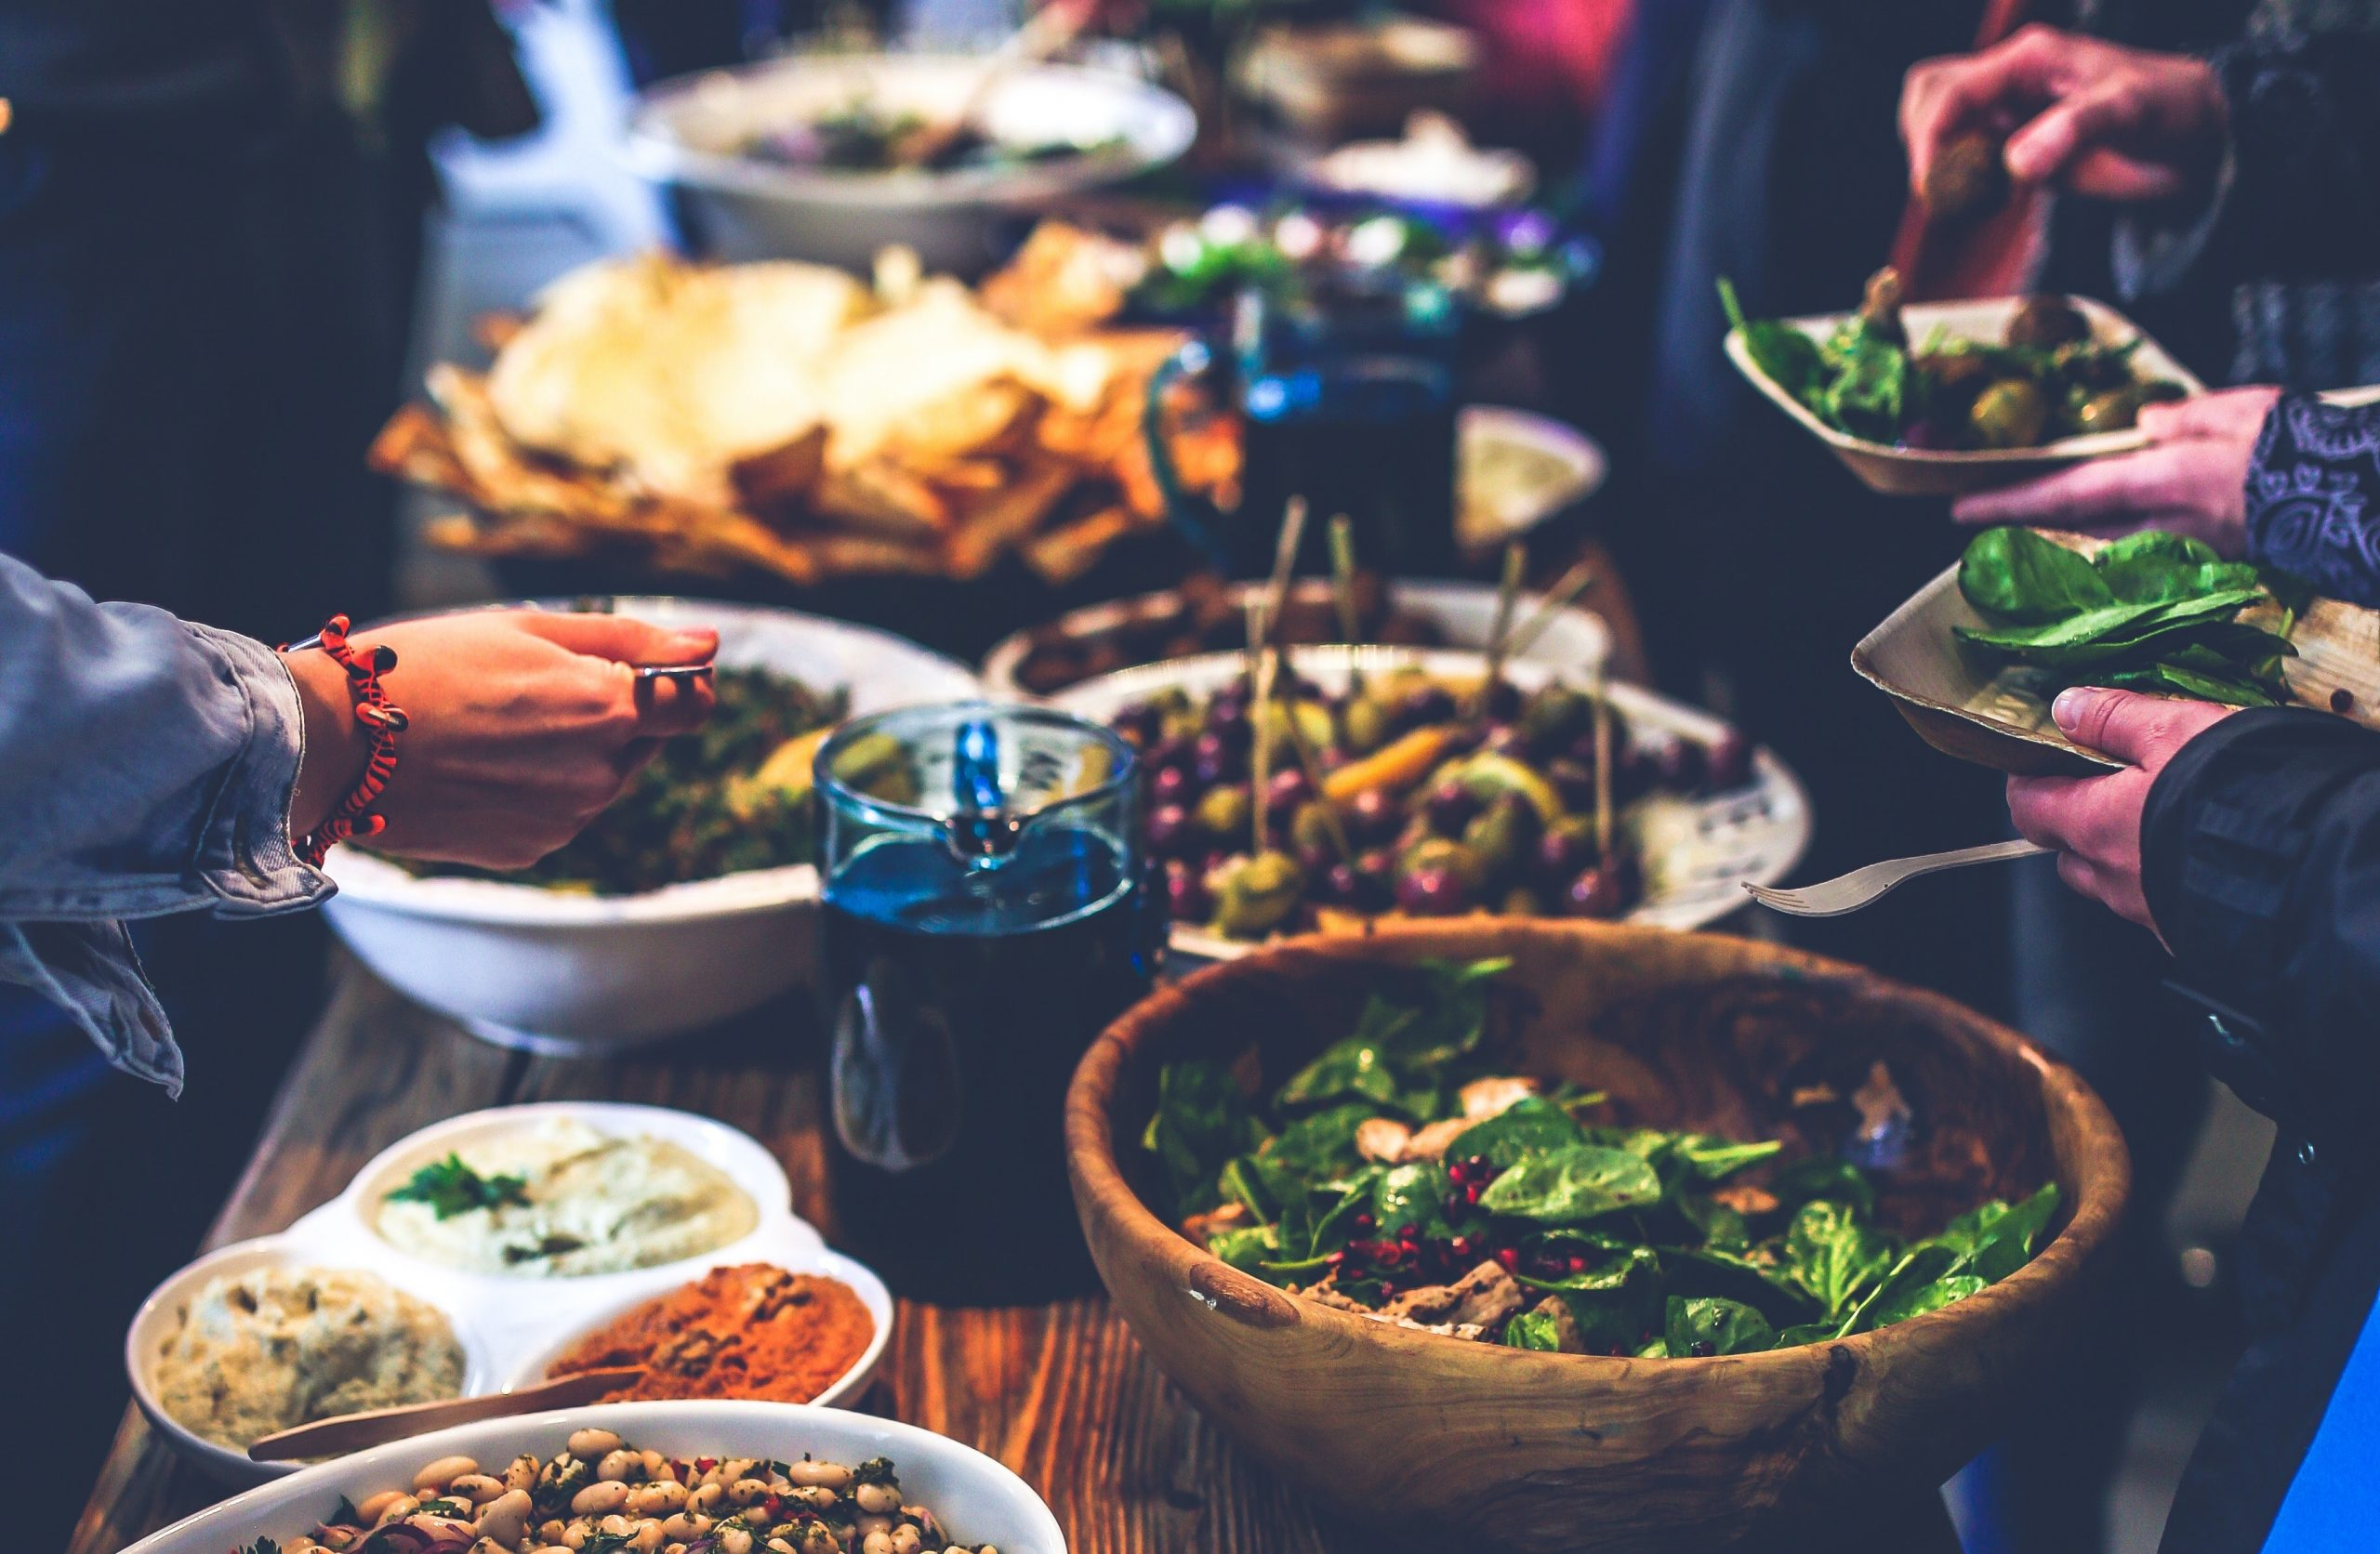 The Potluck of Ideas: How to tell whether an idea is harmful or just distasteful